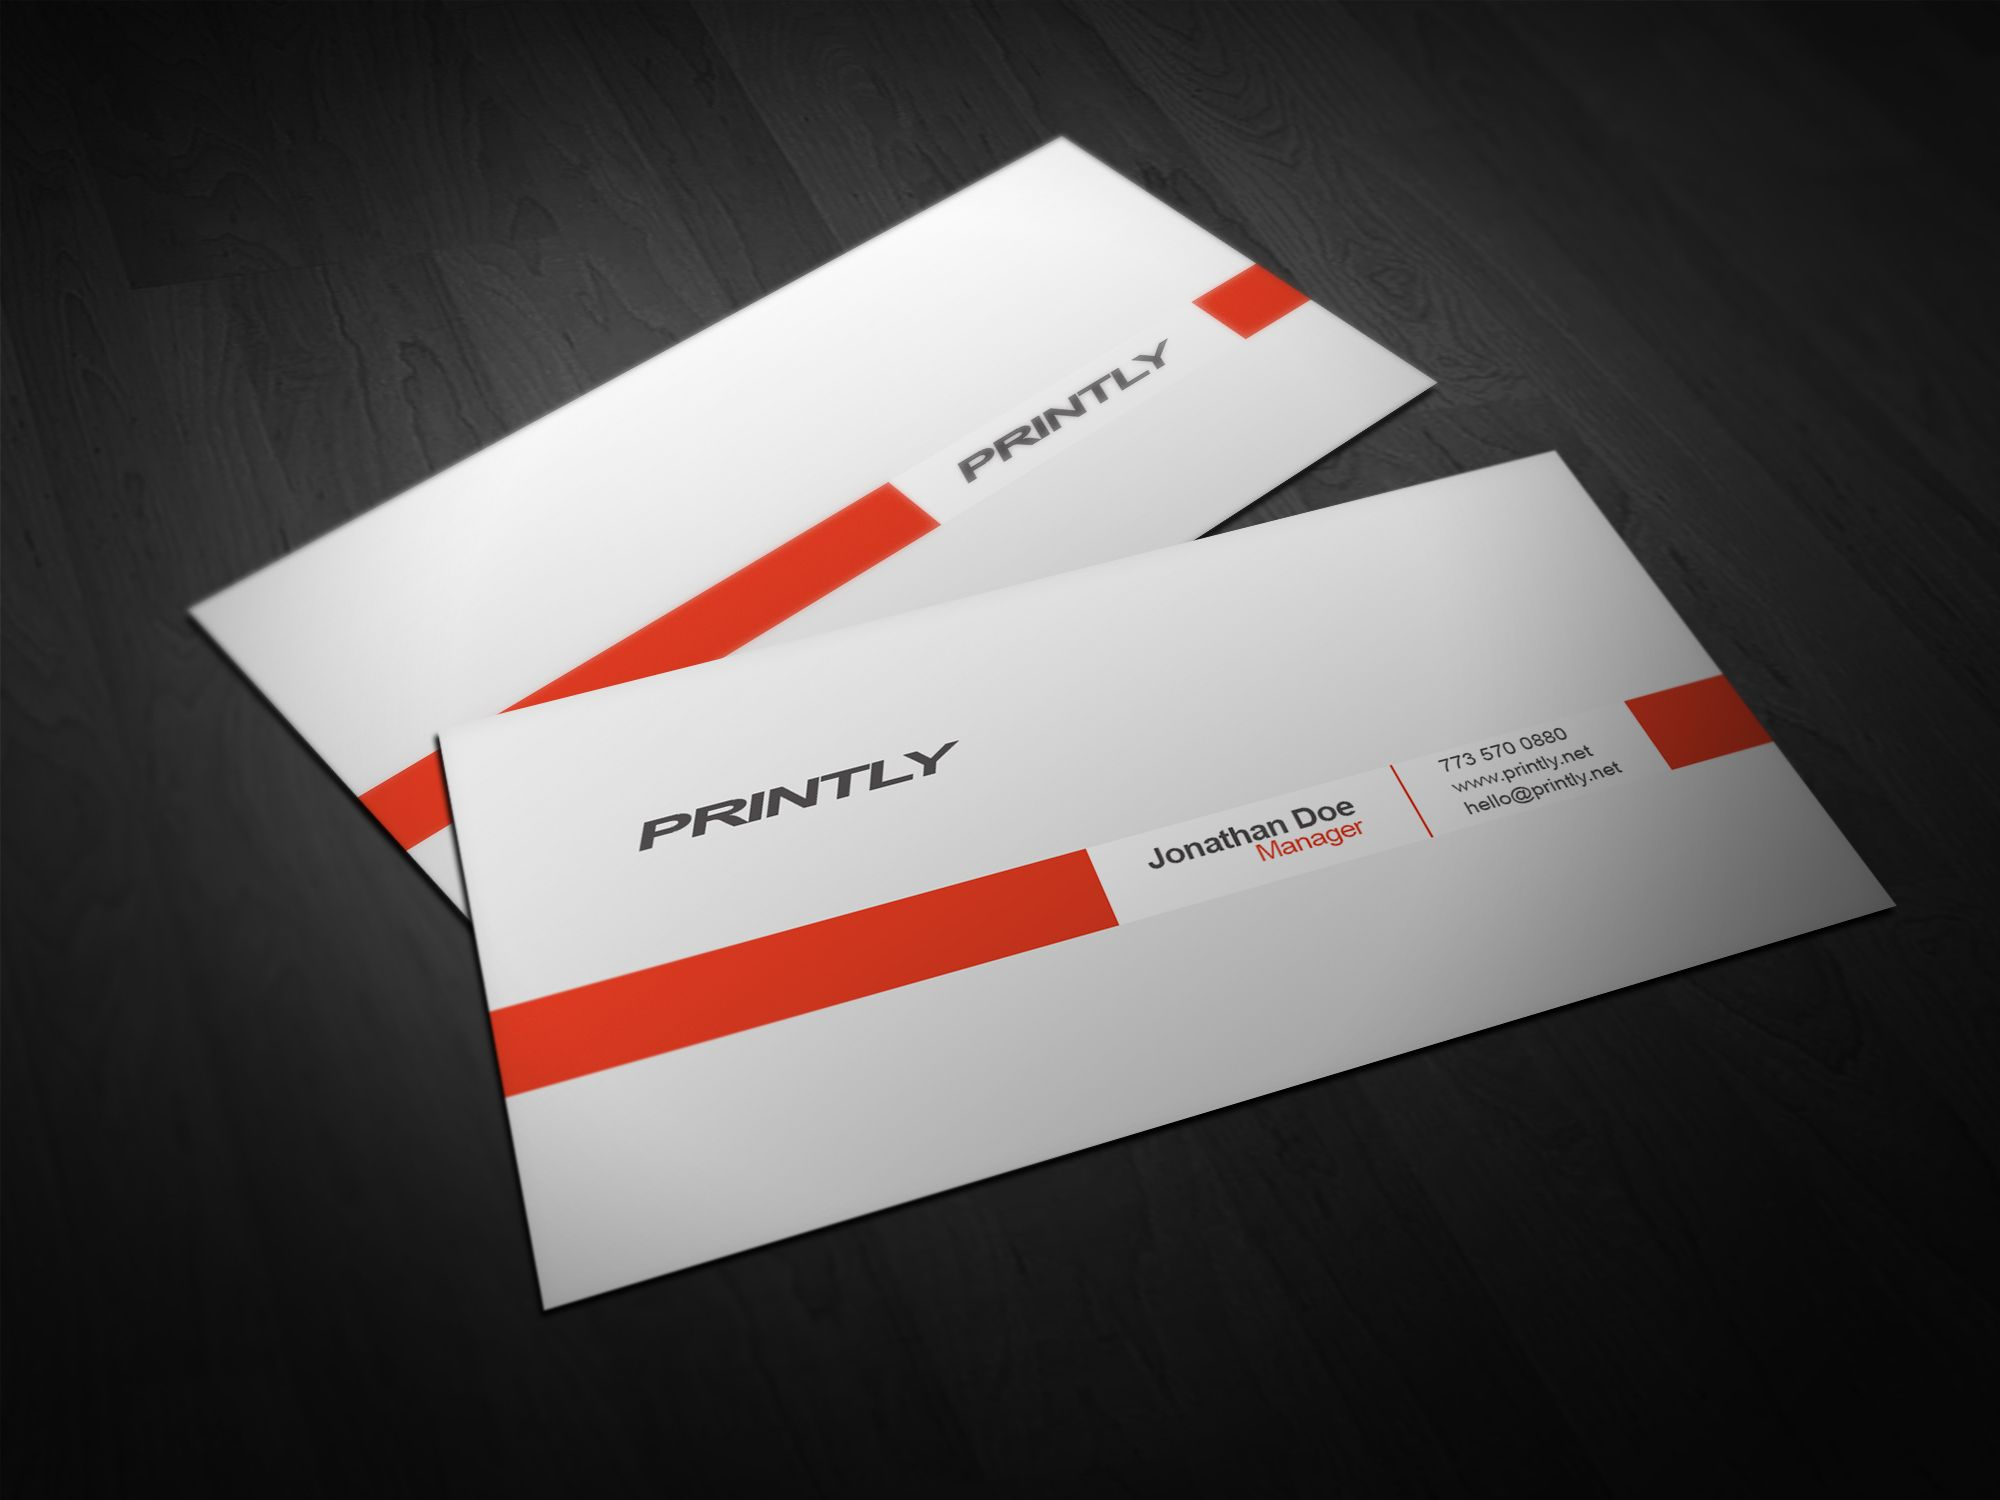 Free Printly PSD Business Card Template PRINTLY Design - Business card template psd